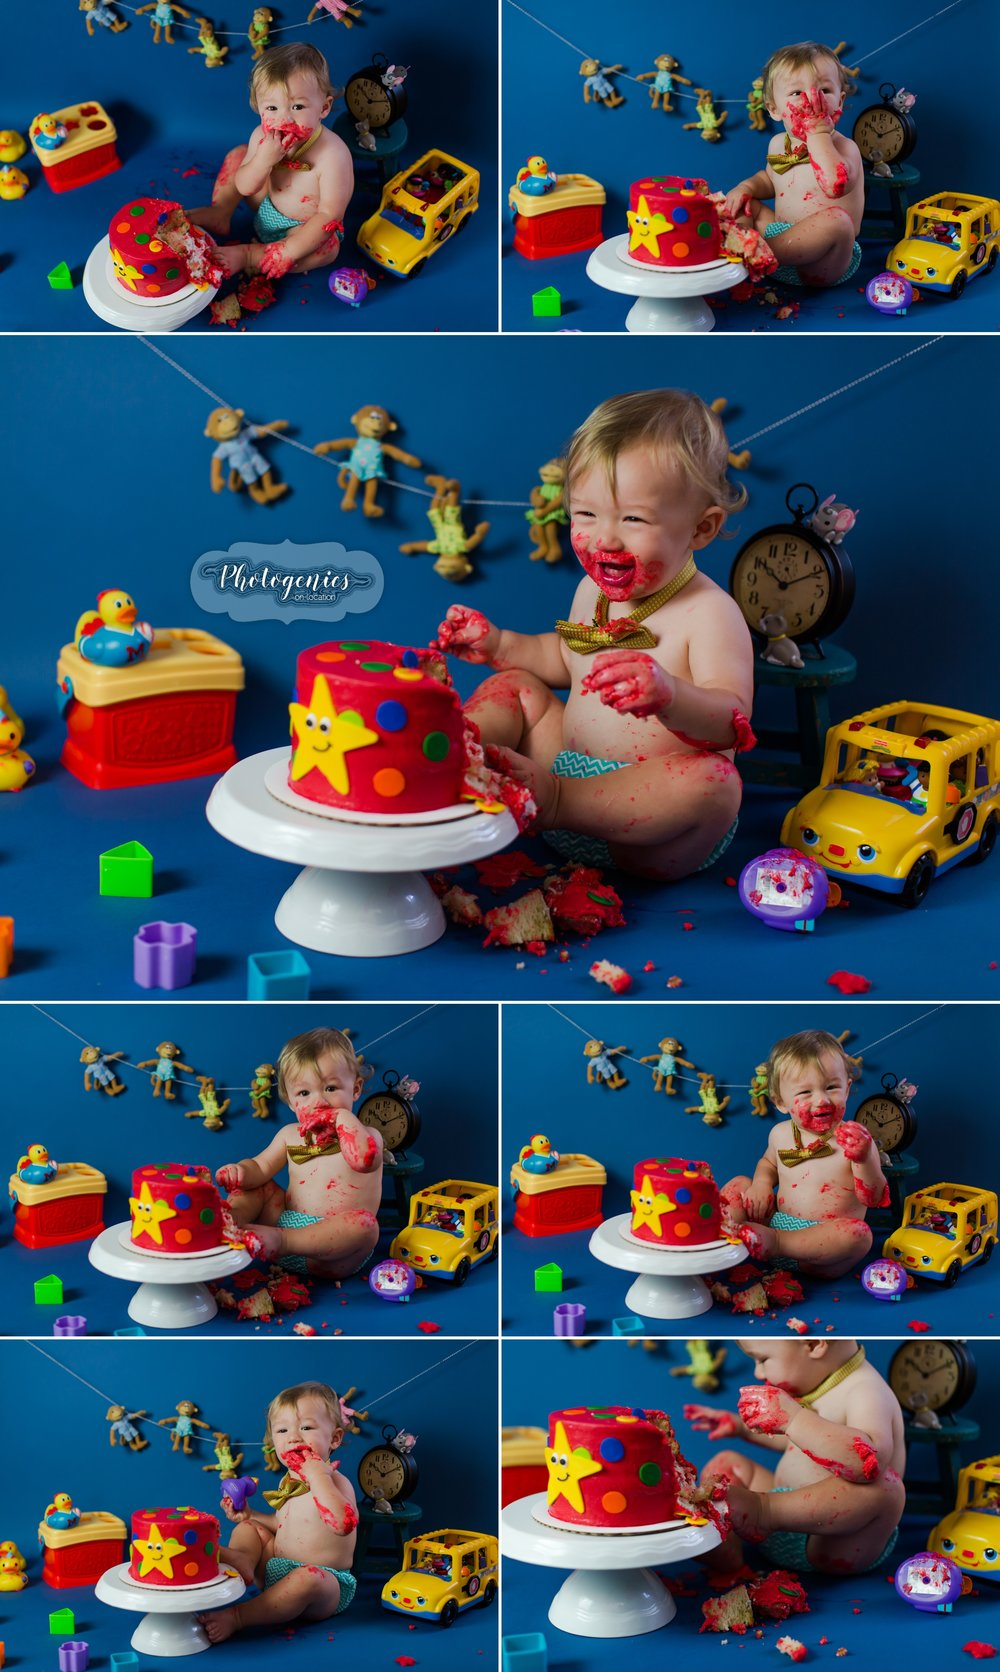 nursery_rhyme_cake_smash_photography_boy_little_baby_bum